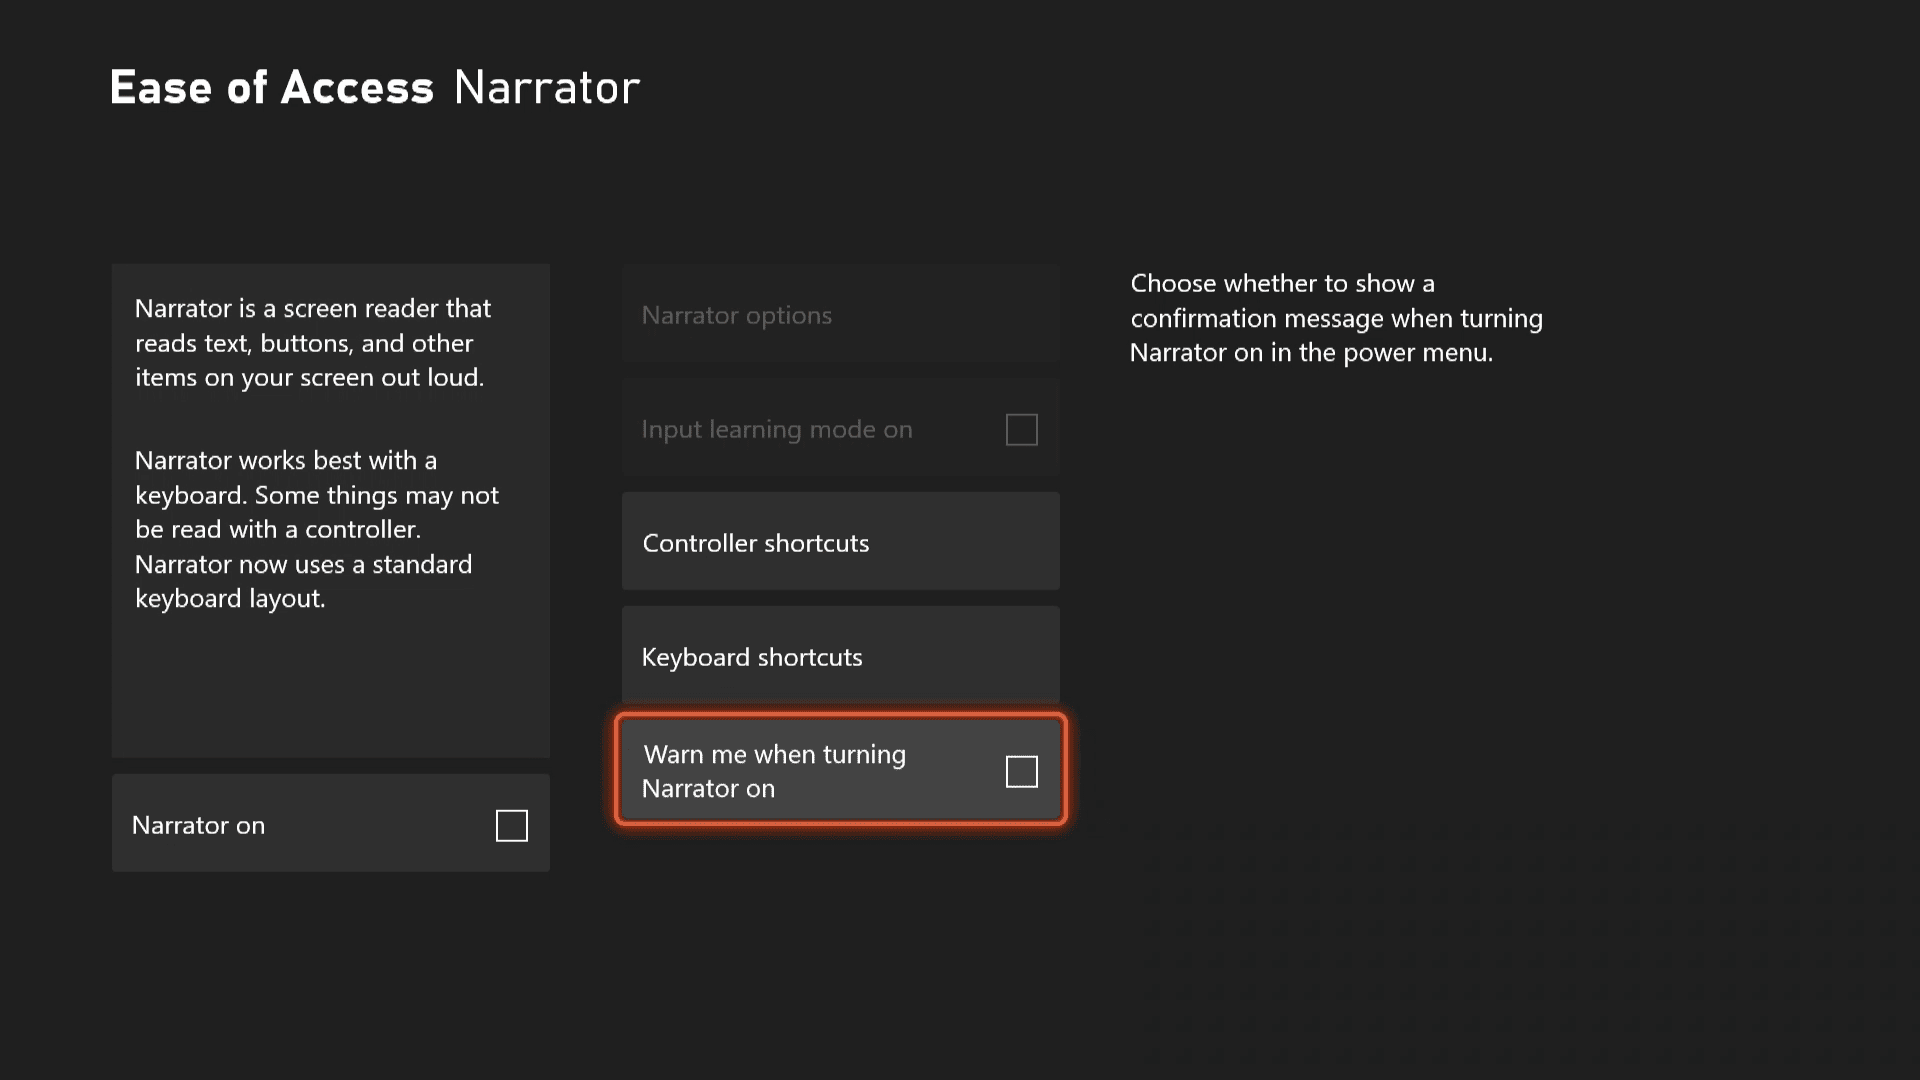 Setting the narrator warning on Xbox Series X|S.